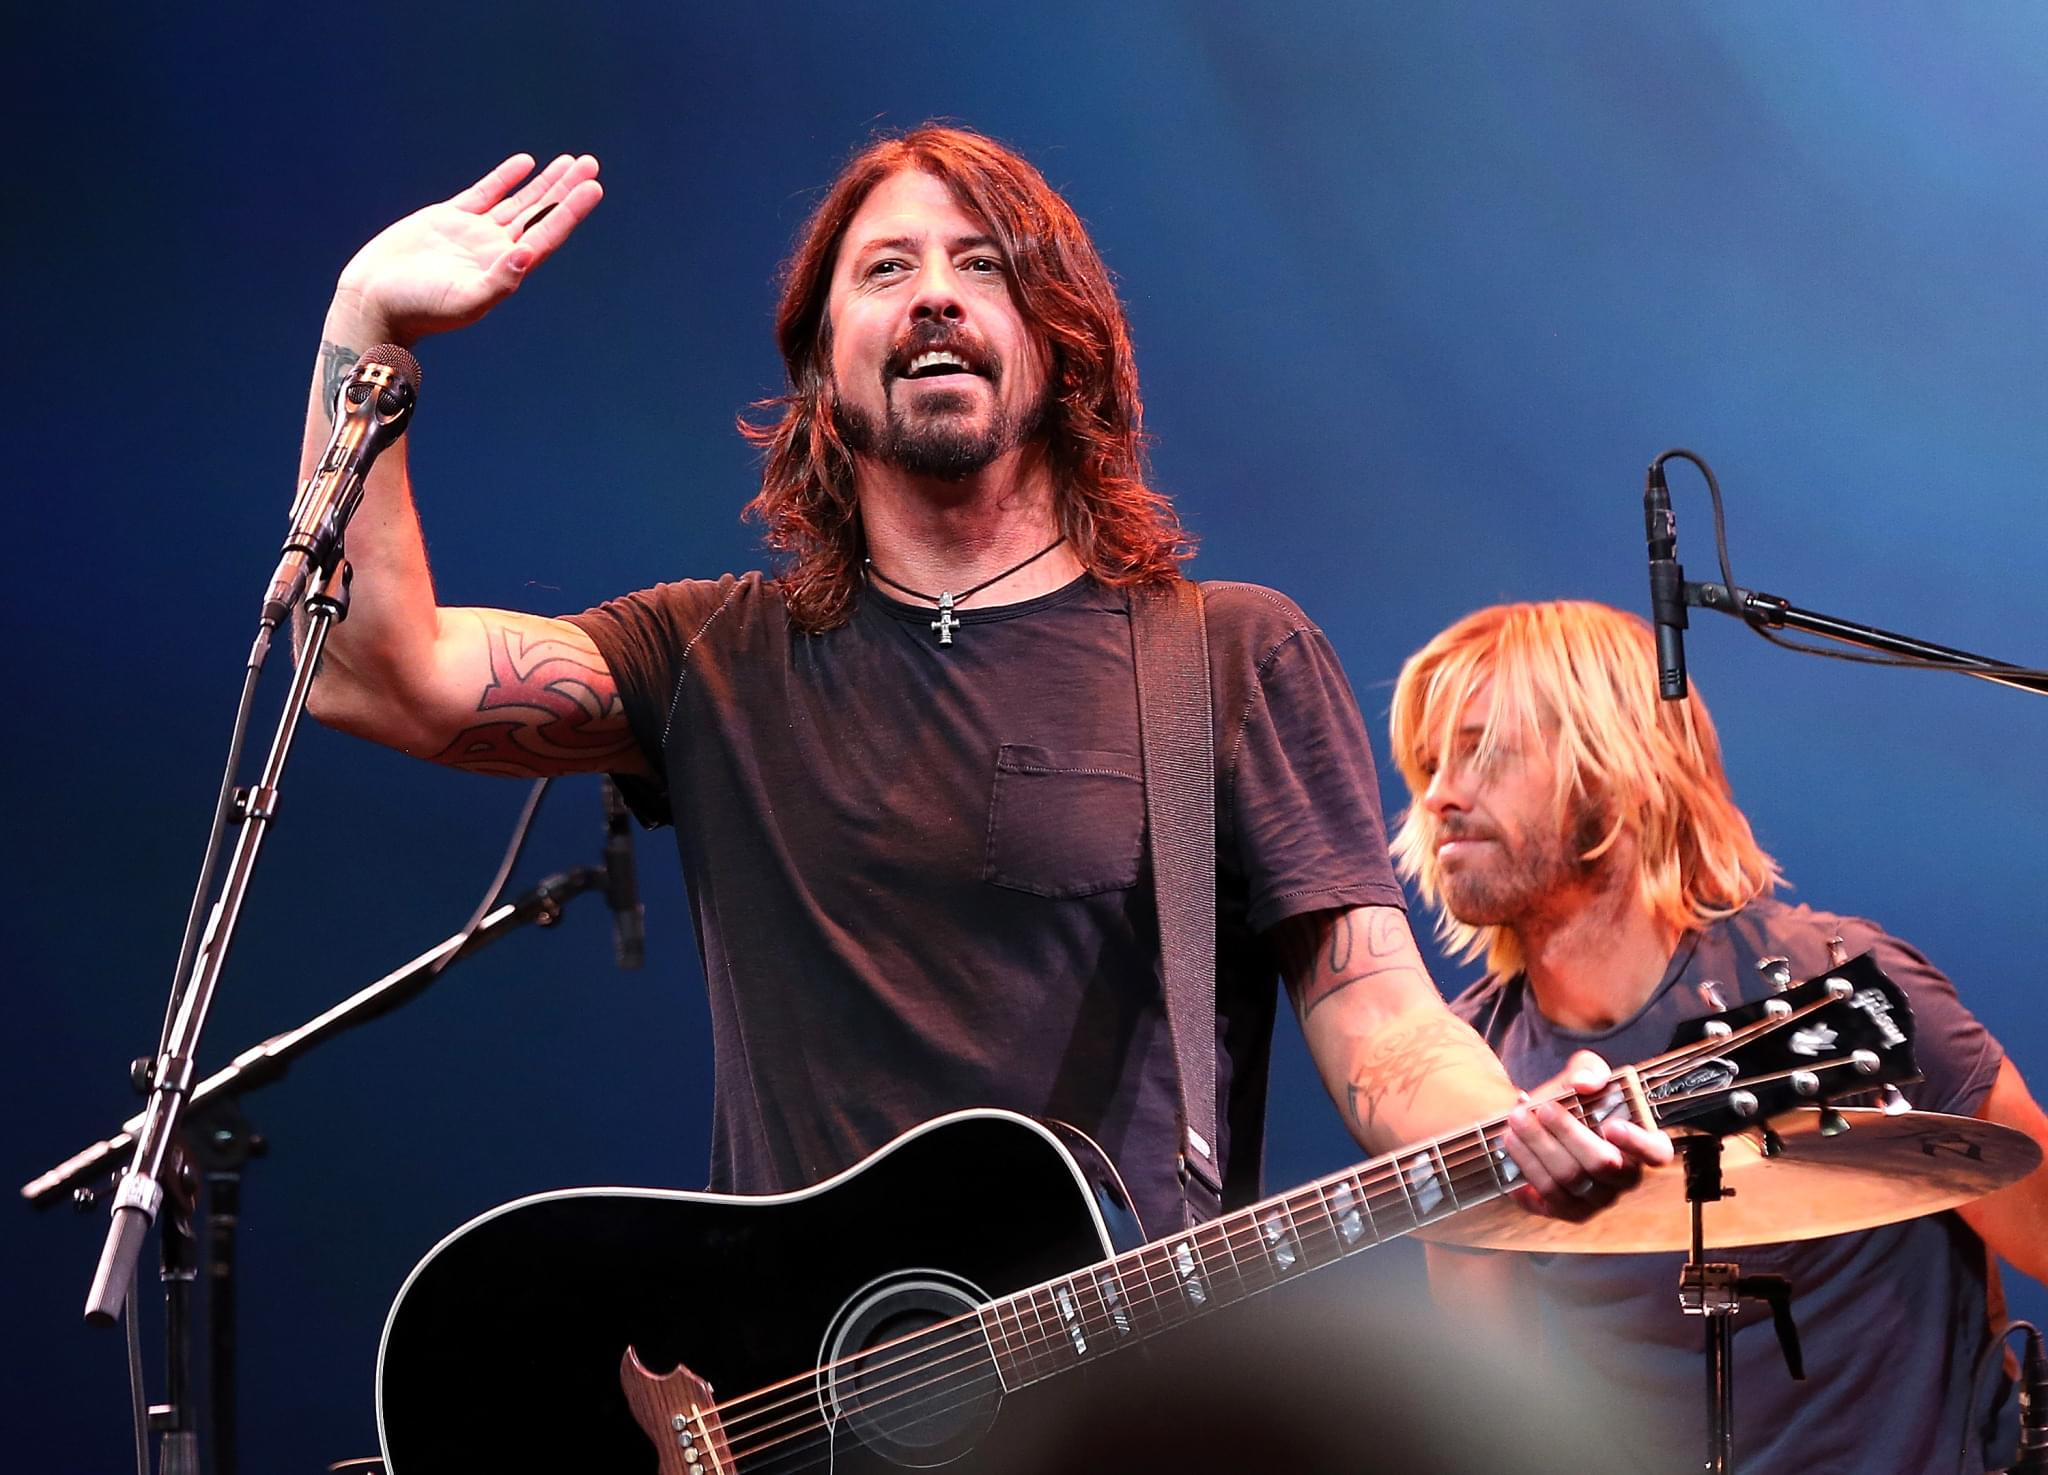 Another Foo Fighters E.P. has Been Born